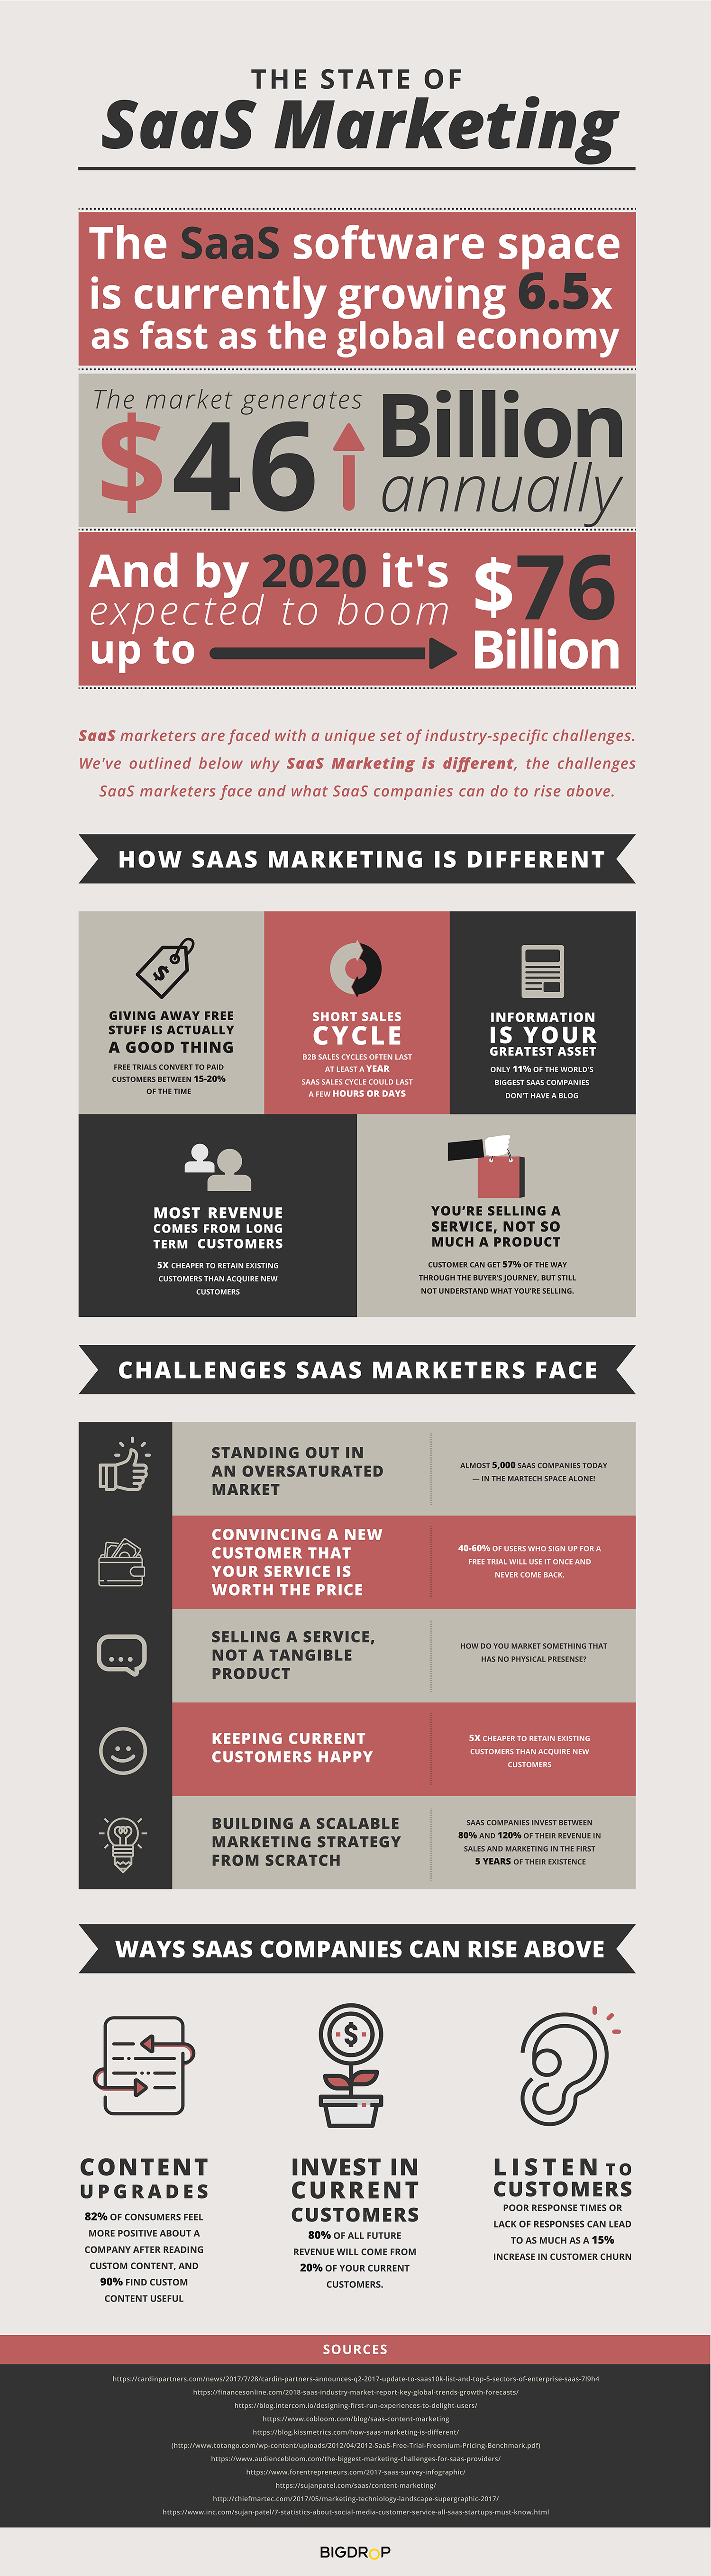 The State of SaaS Marketing Infographic